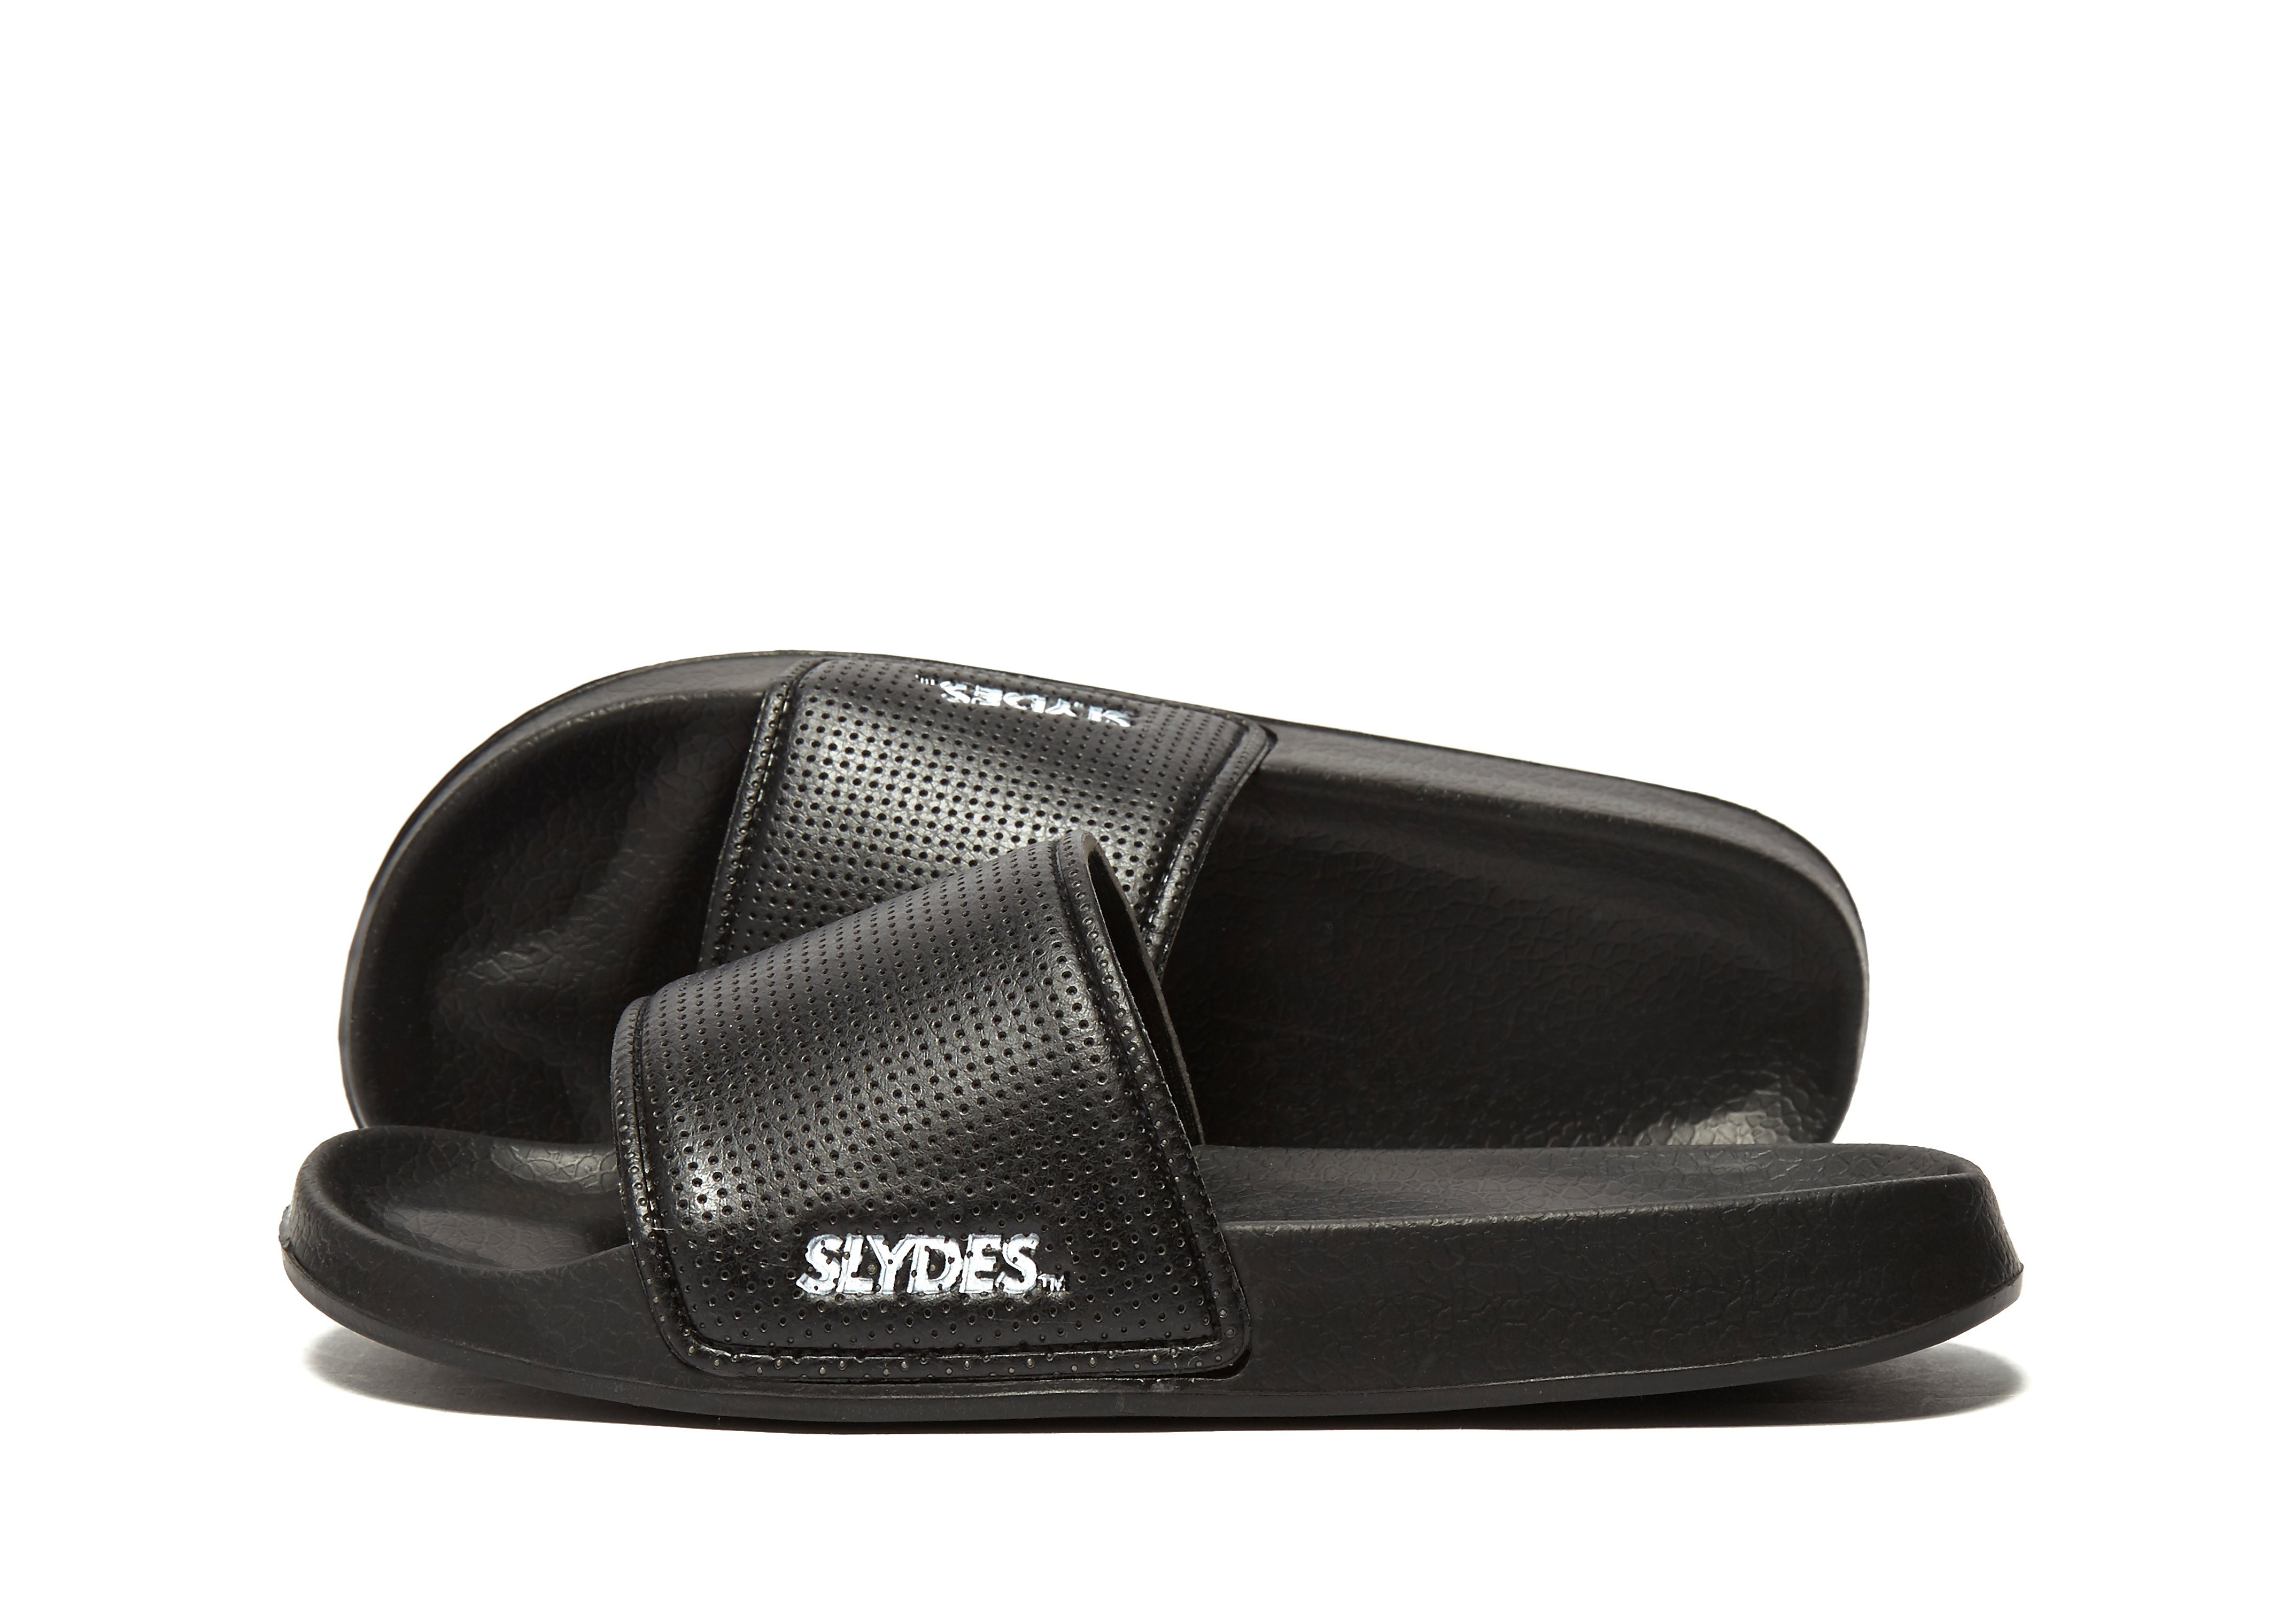 Slydes Perforated Slides